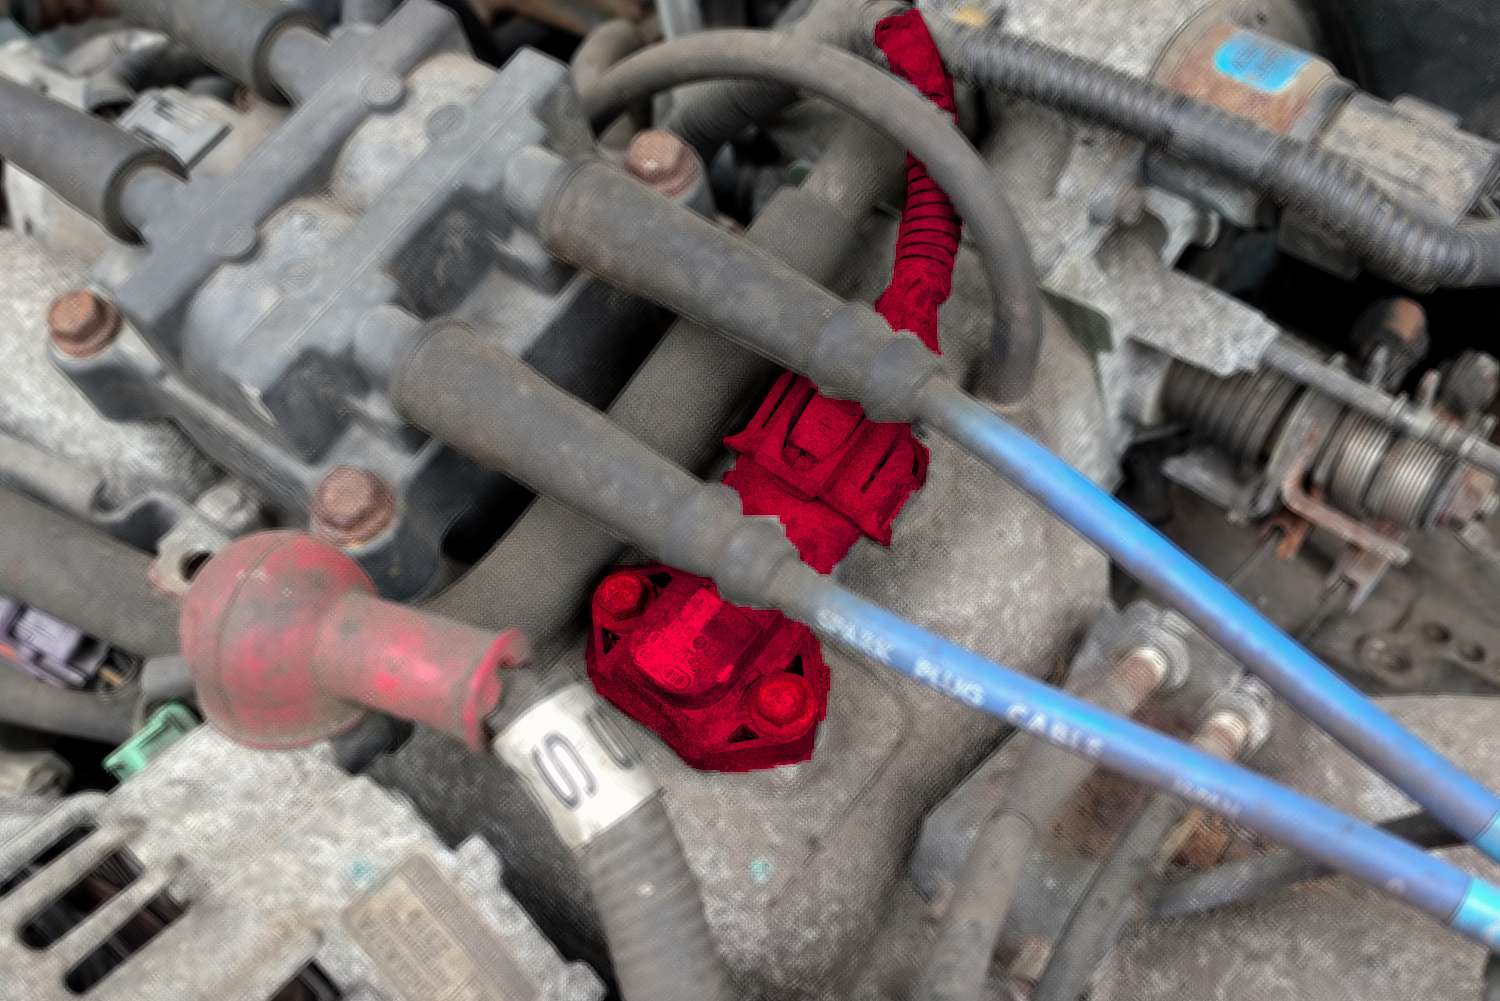 7 Symptoms of a Broken MAP Sensor on 3 wire sensor operation, 3 wire sensor connector, 3 wire light diagram, 3 wire proximity sensor pinout, throttle position sensor diagram, 3 wire o2 sensor wiring, 4 wire sensor diagram, 3 wire sensor cable, mazda 3 engine diagram,